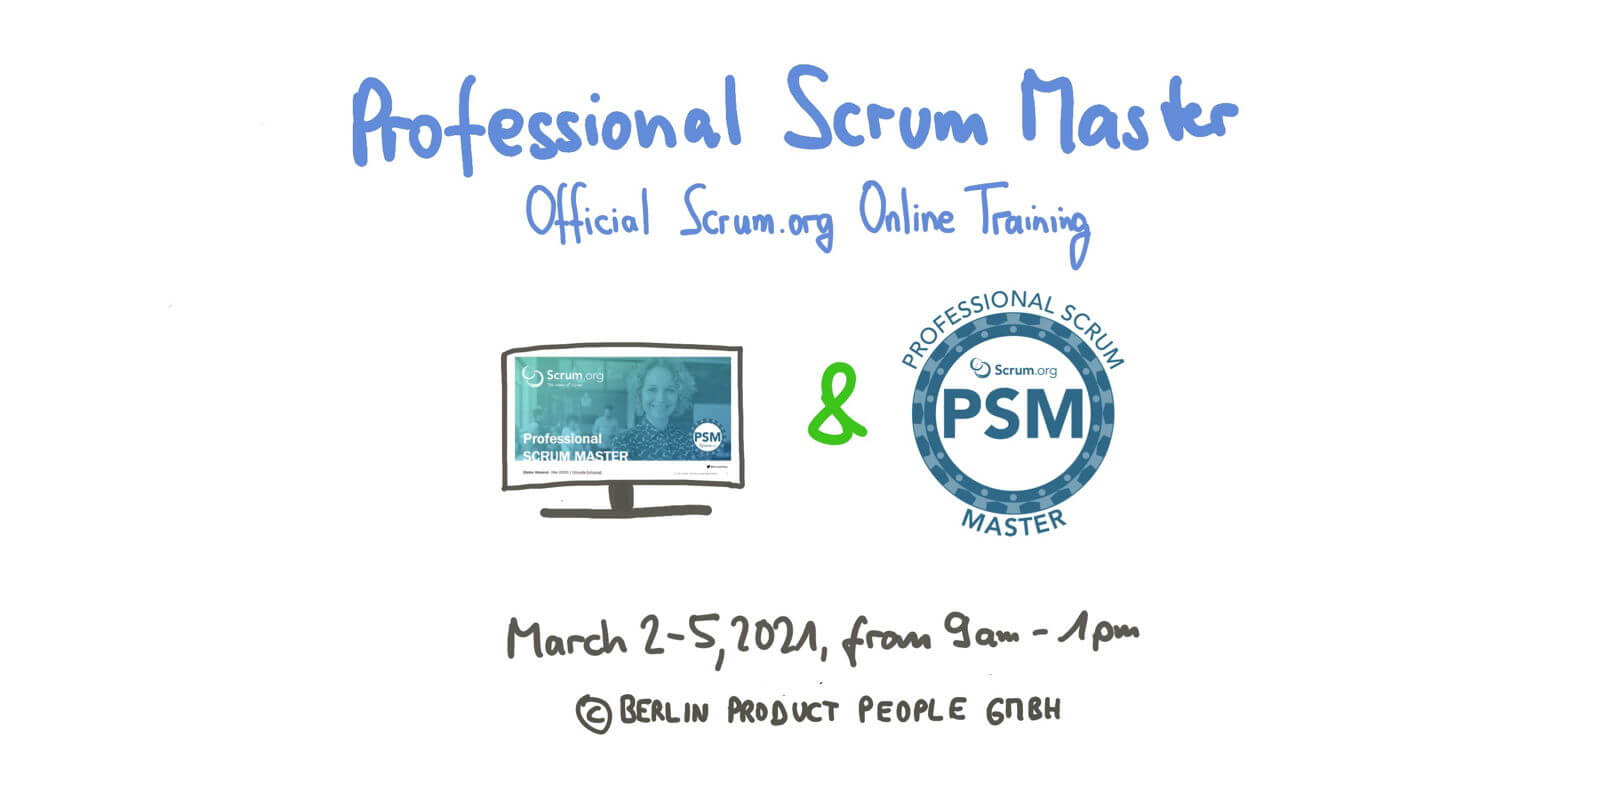 Professional Scrum Master Training with PSM I Certificate: March 2-5, 2021 — Berlin Product People GmbH